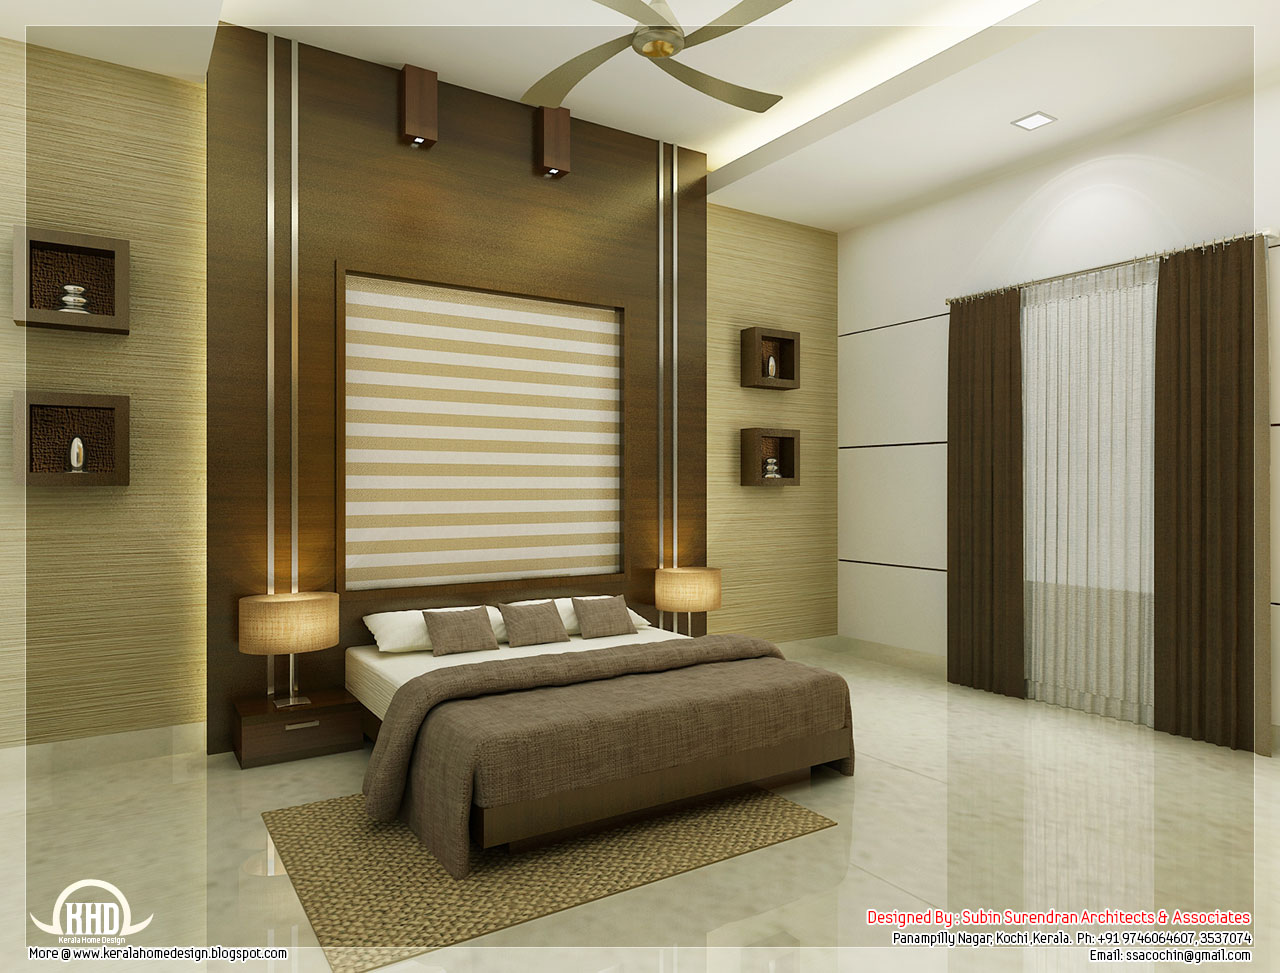 Beautiful bedroom interior designs kerala home design for Interior home design bedroom ideas